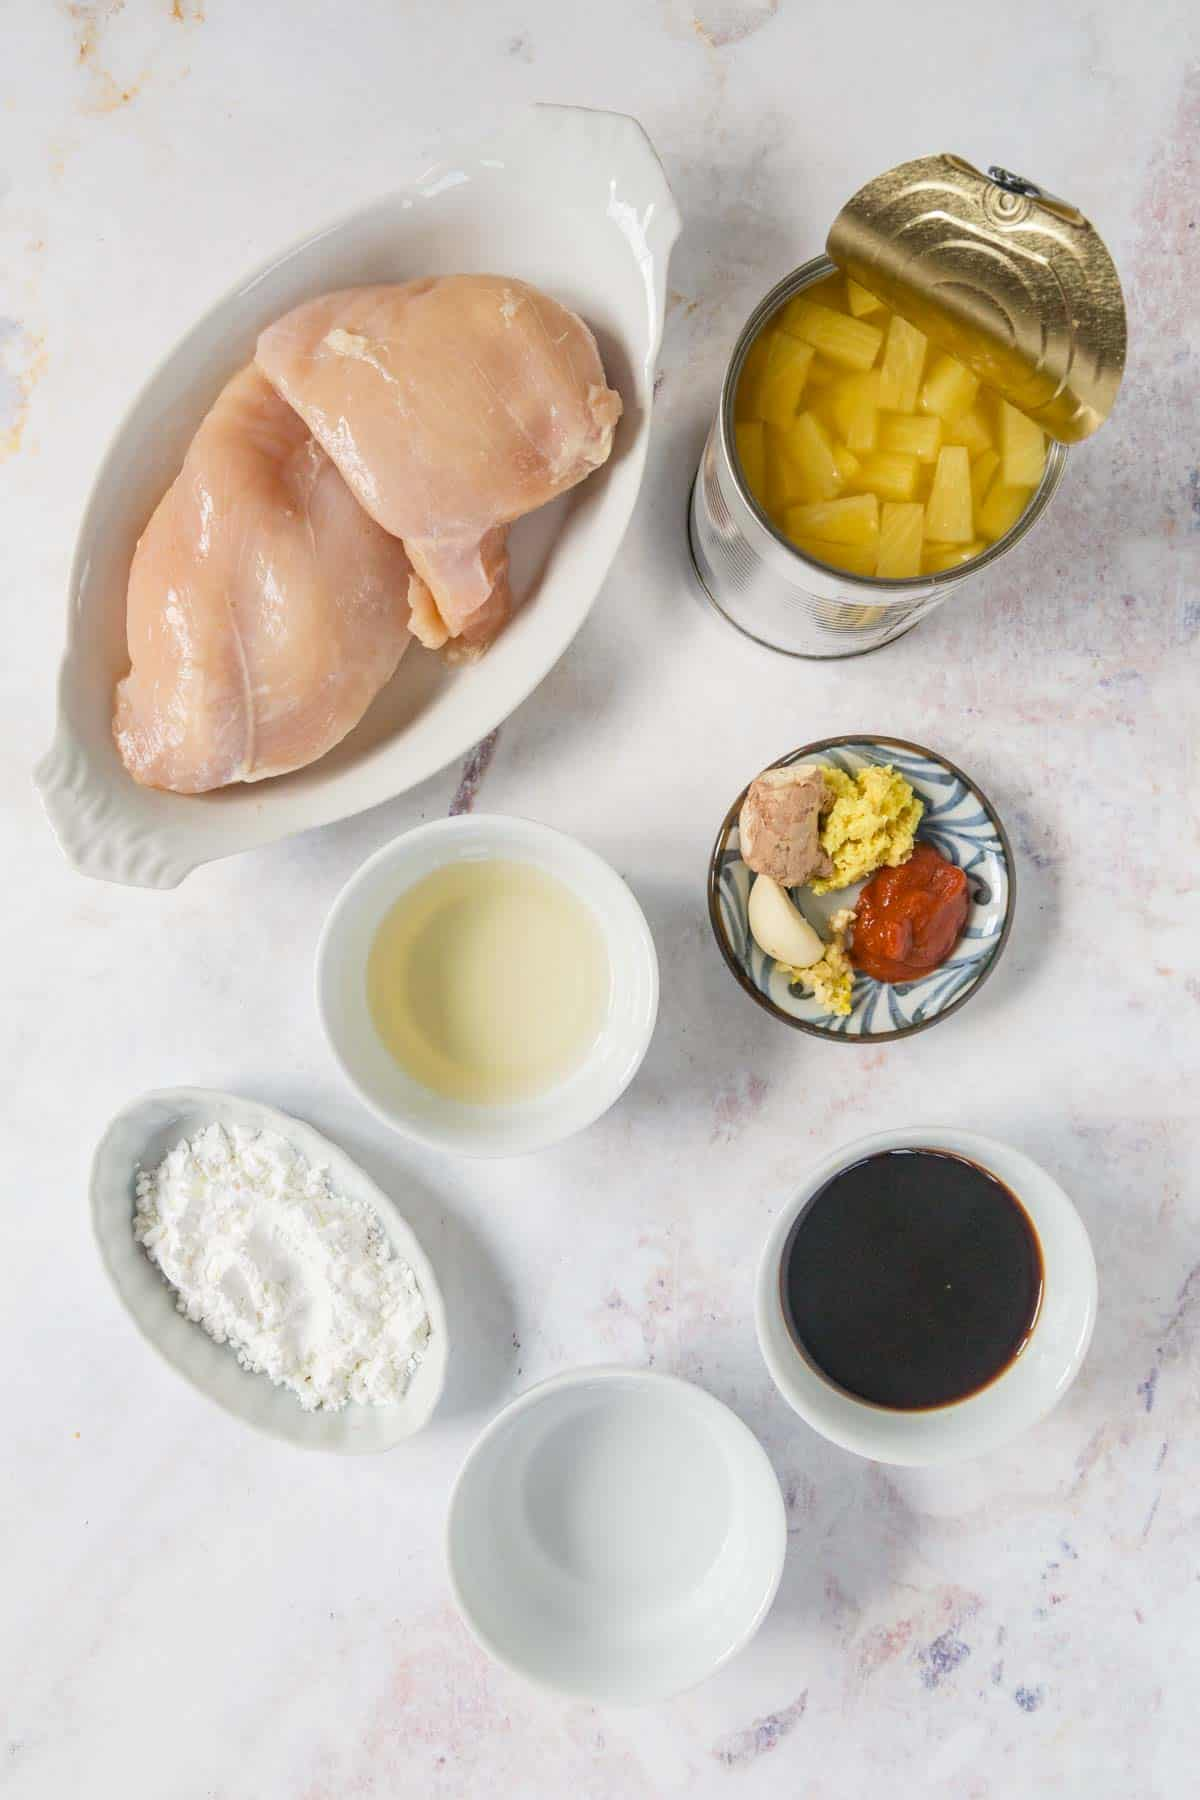 raw chicken breast in a dish, plus bowls of soy sauce, rice vinegar, cornstarch, water, garlic, ginger, and sririacha, and acan of pineapple tidbits on a marble tabletop